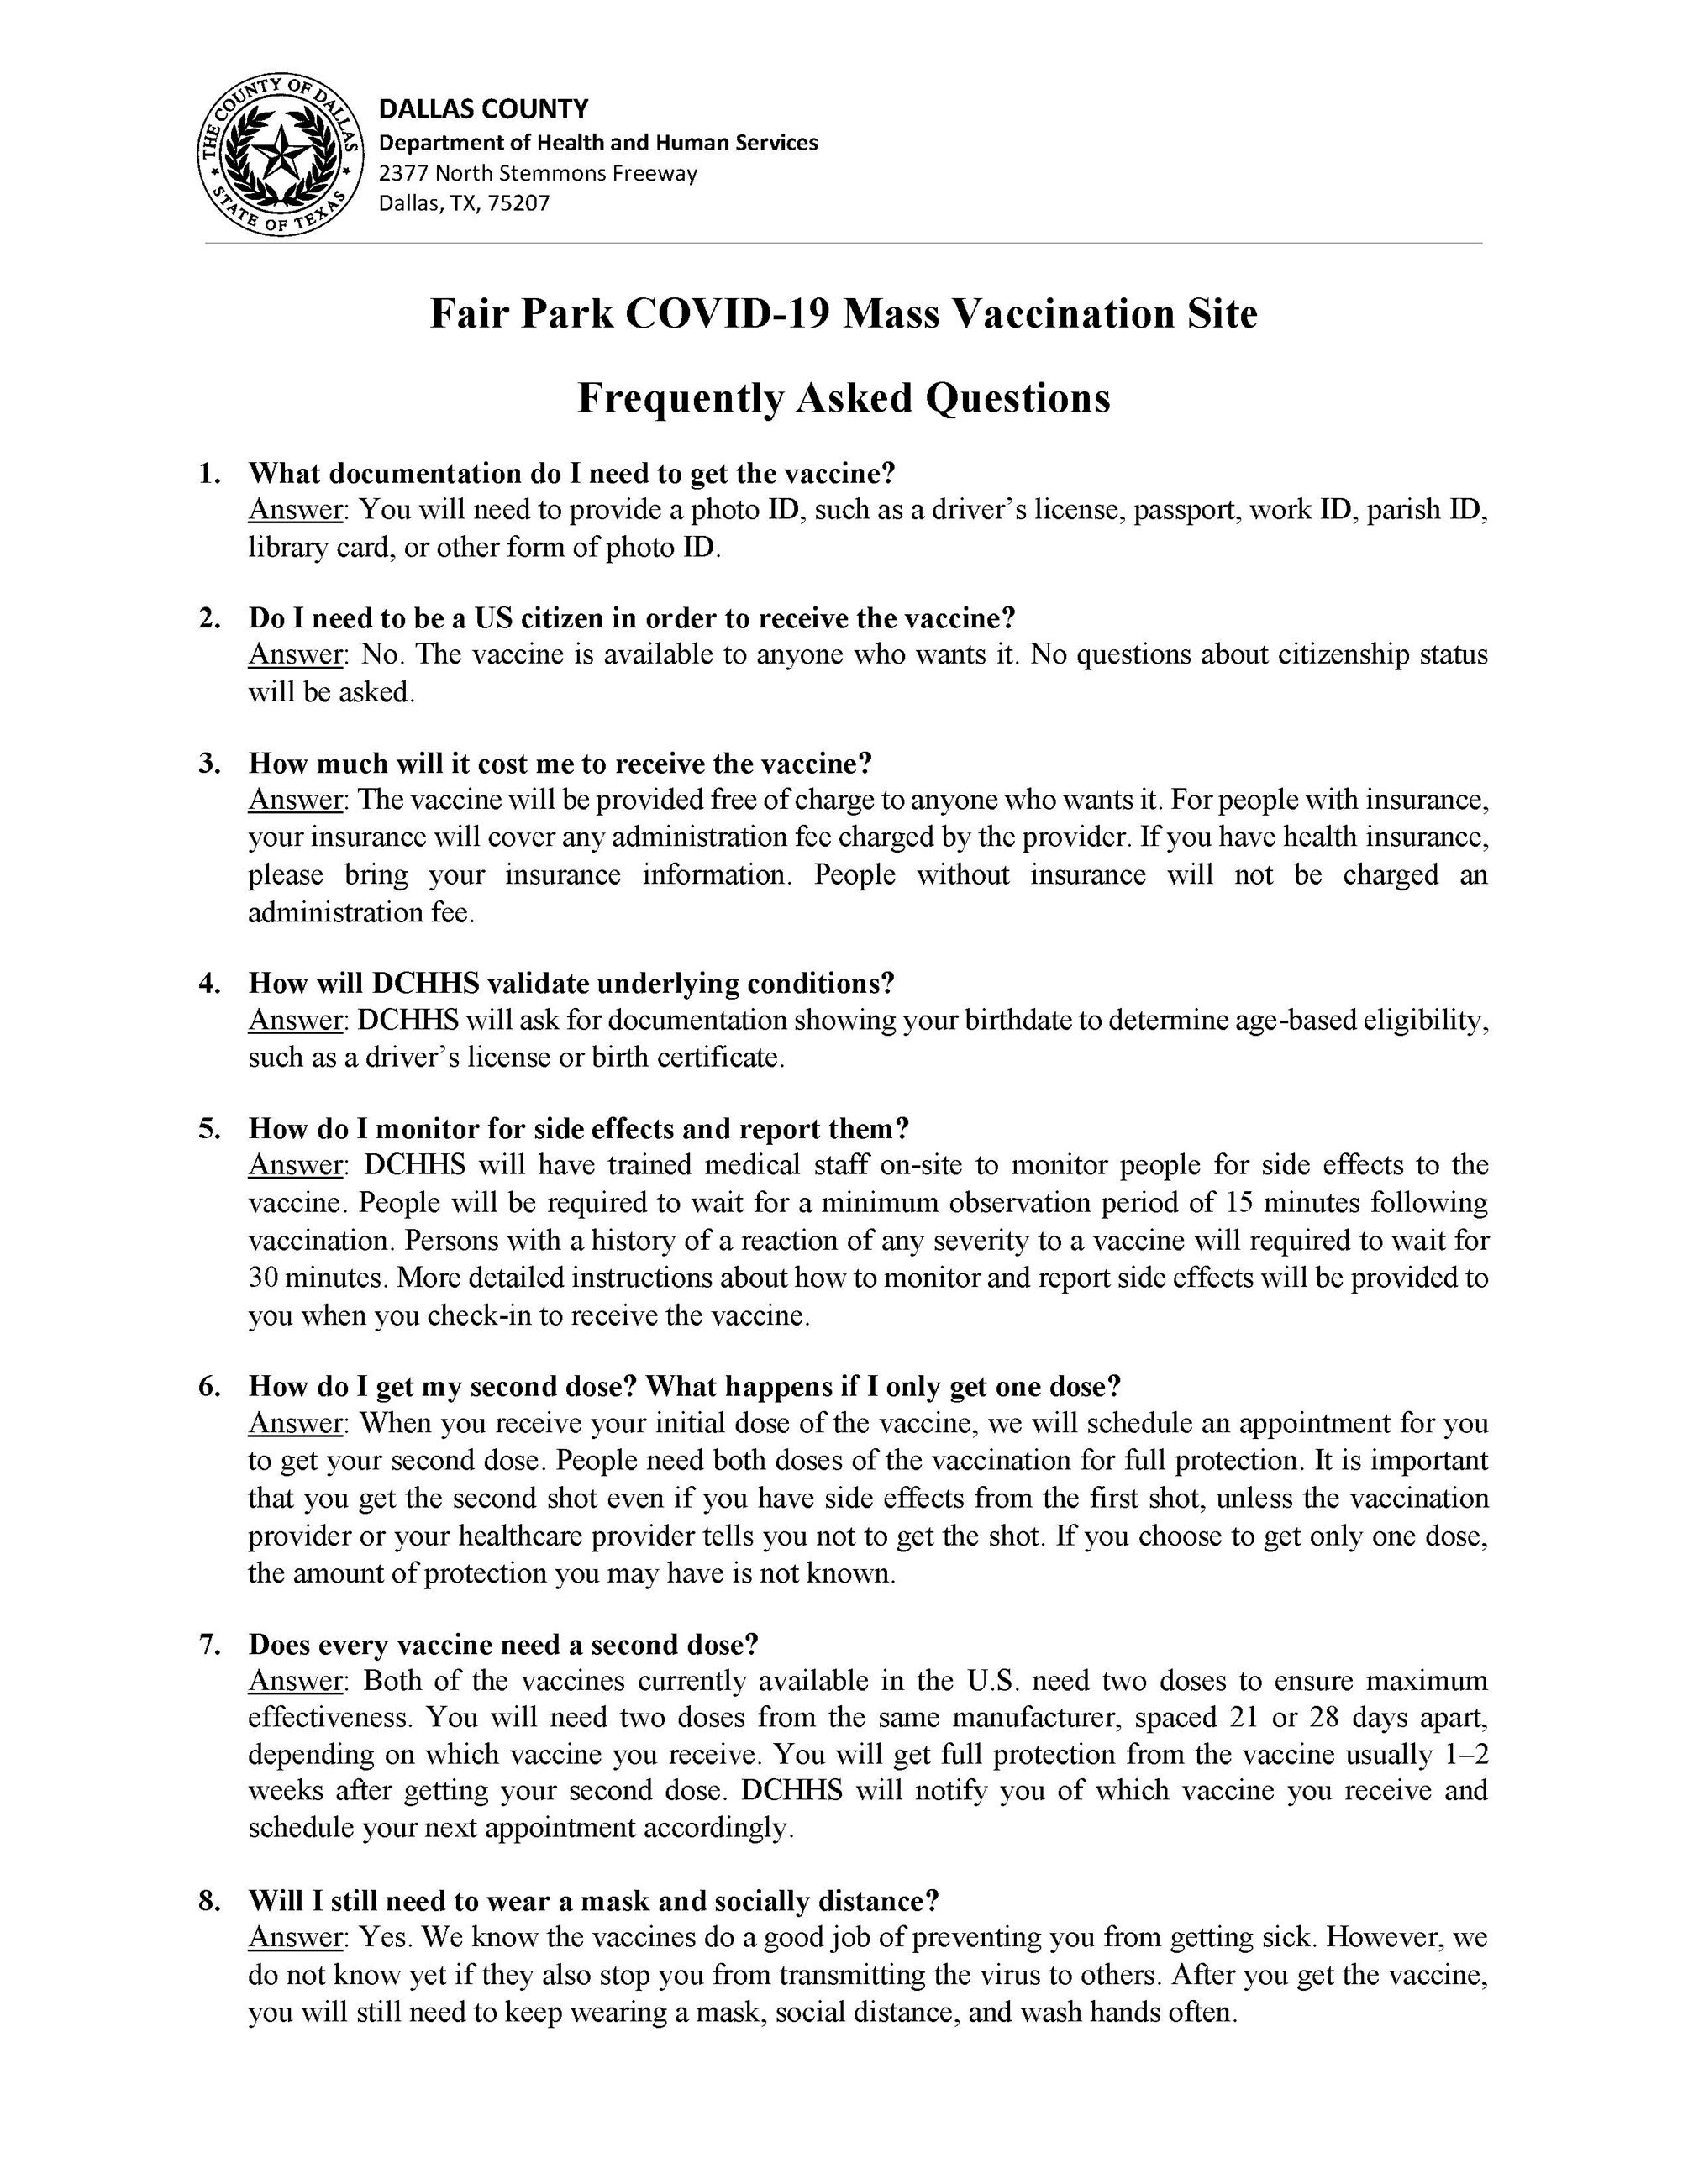 Fair Park Mass Vaccination FAQ Eng Span-1_Page_1